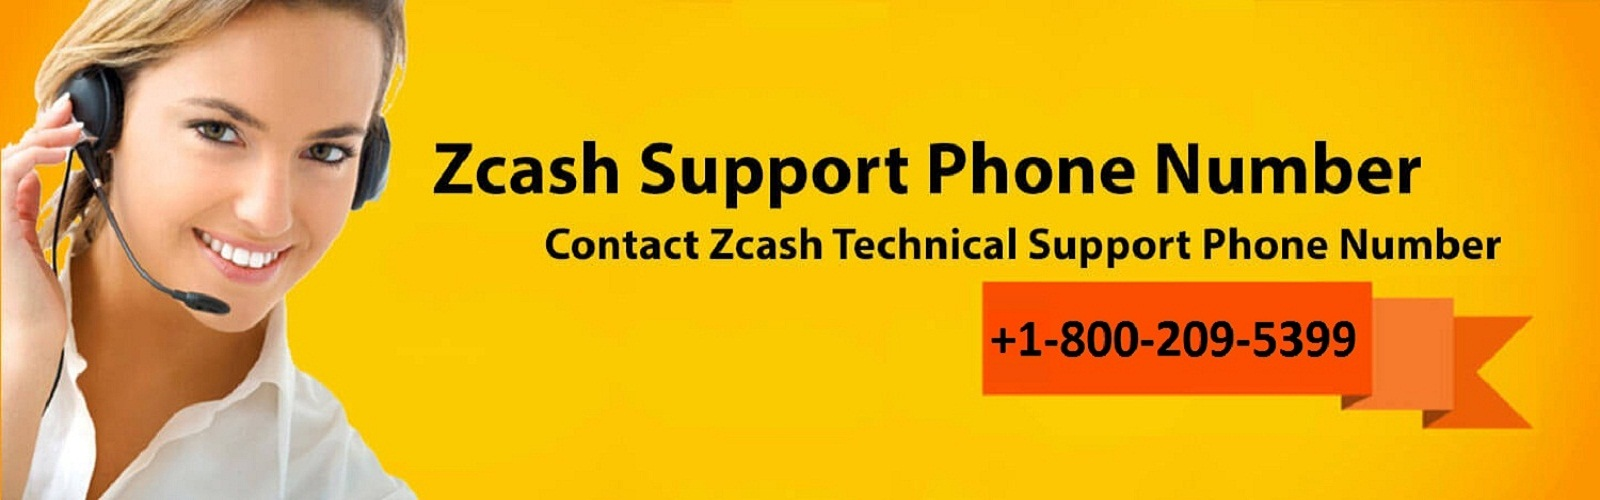 Zcash Support Phone Number